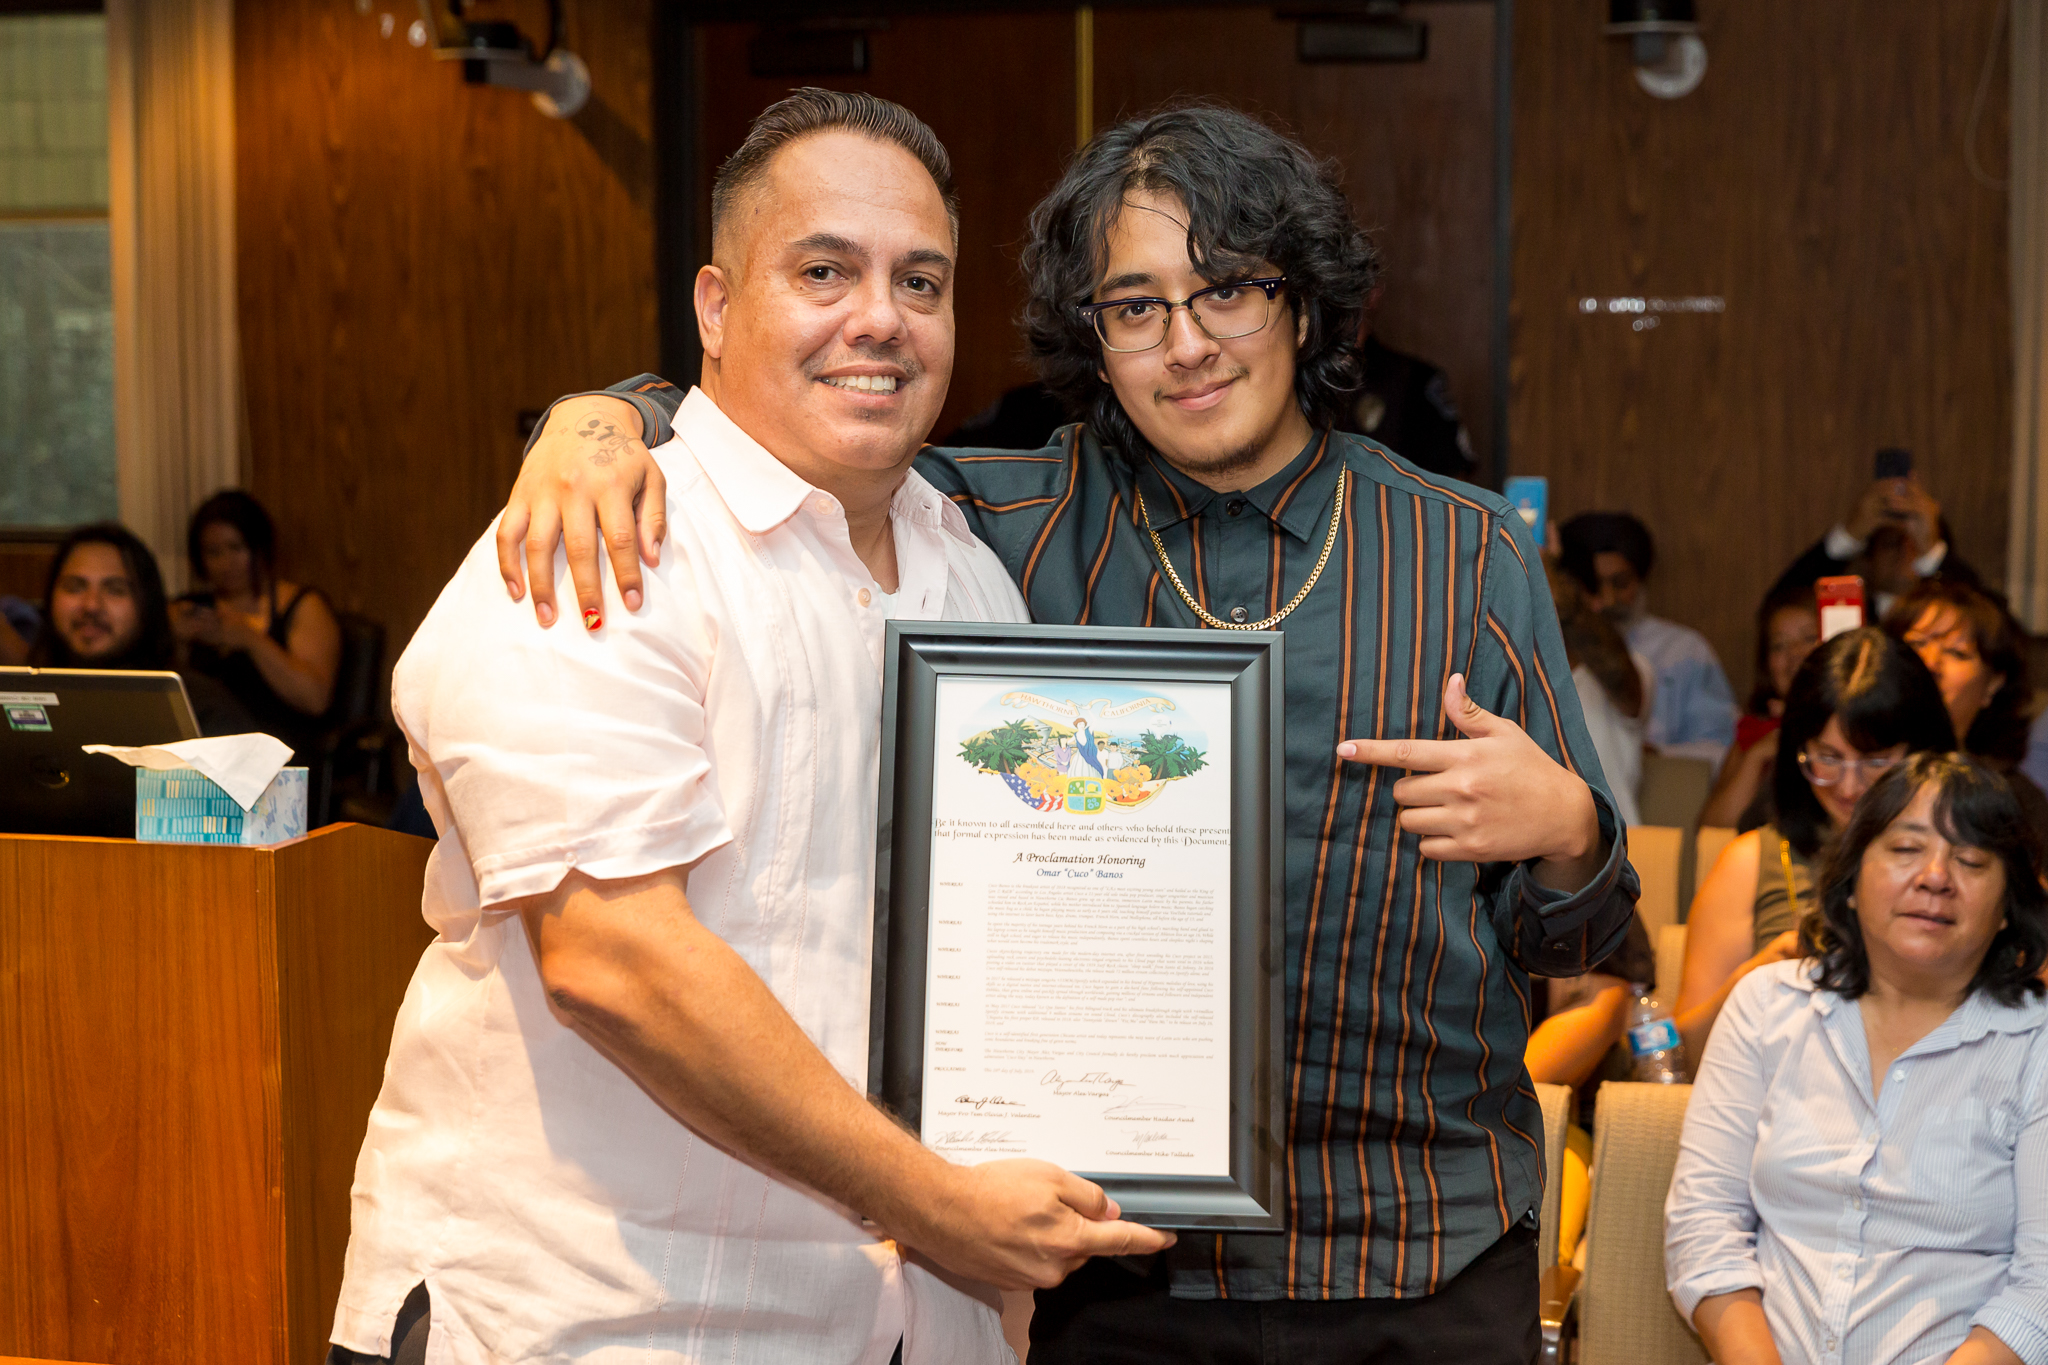 Mayor Vargas and Cuco with Proclamation